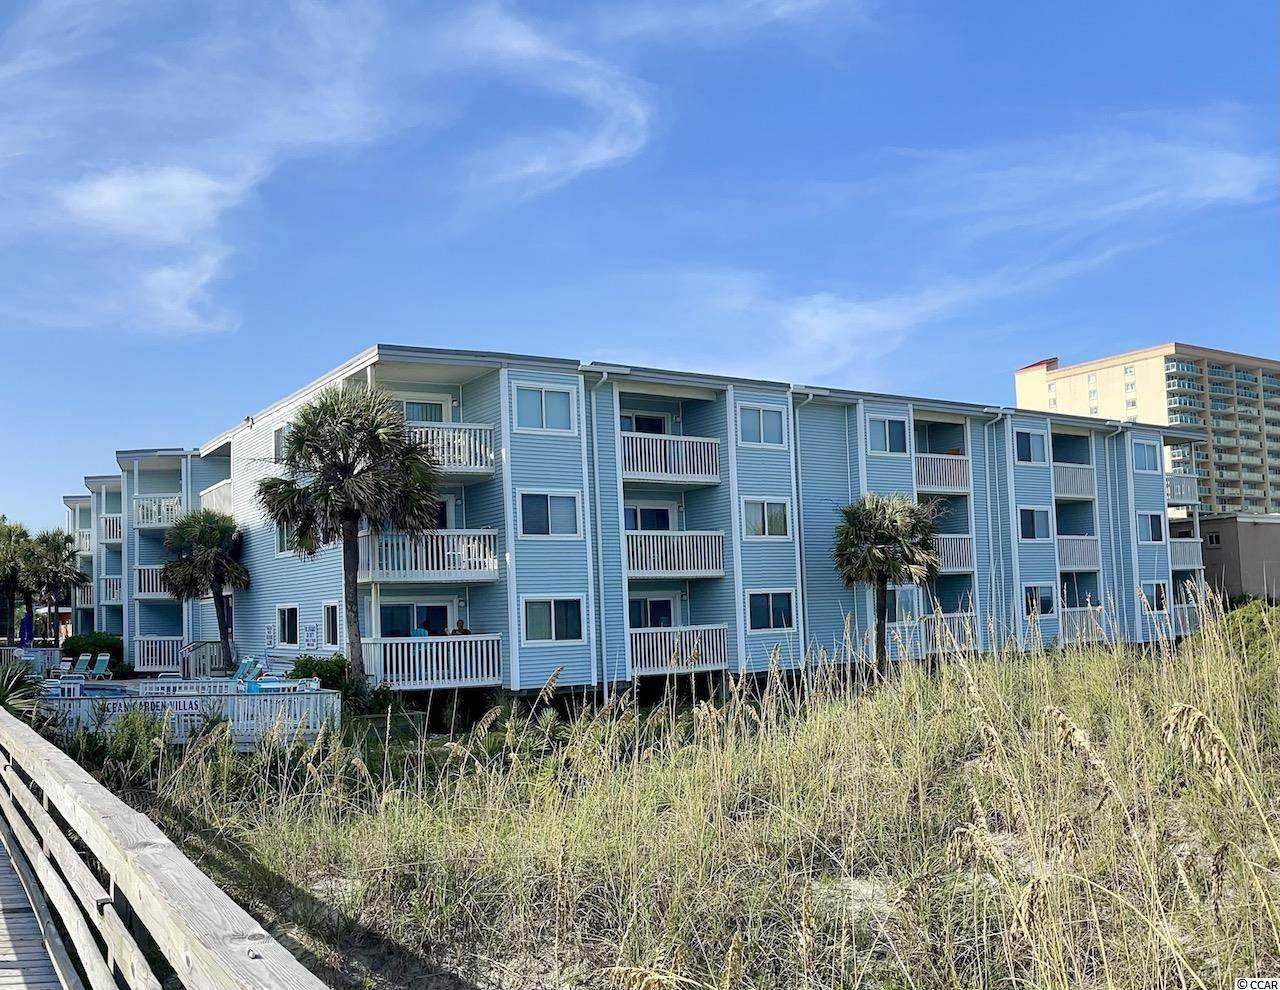 Look no further than this beautiful OCEANFRONT end unit condo located at Ocean Garden Villas in North Myrtle Beach. Situated perfectly on the second floor, this fully furnished turnkey 2 bedroom/2 bathroom condo has breathtaking panoramic views of the ocean and overlooks the pool! Ample sleeping accommodations for all of your guests with a king bed and a twin bed located in the master, as well as two double beds in the second bedroom. Don't miss out on this opportunity to own your perfect vacation getaway!  The owners purchased a new couch, dining room table, and recliner in 2021. New luxury vinyl plank flooring was installed throughout in Sept 2019. HVAC was replaced in April 2016. GE Washer/Dryer replaced in June 2016.